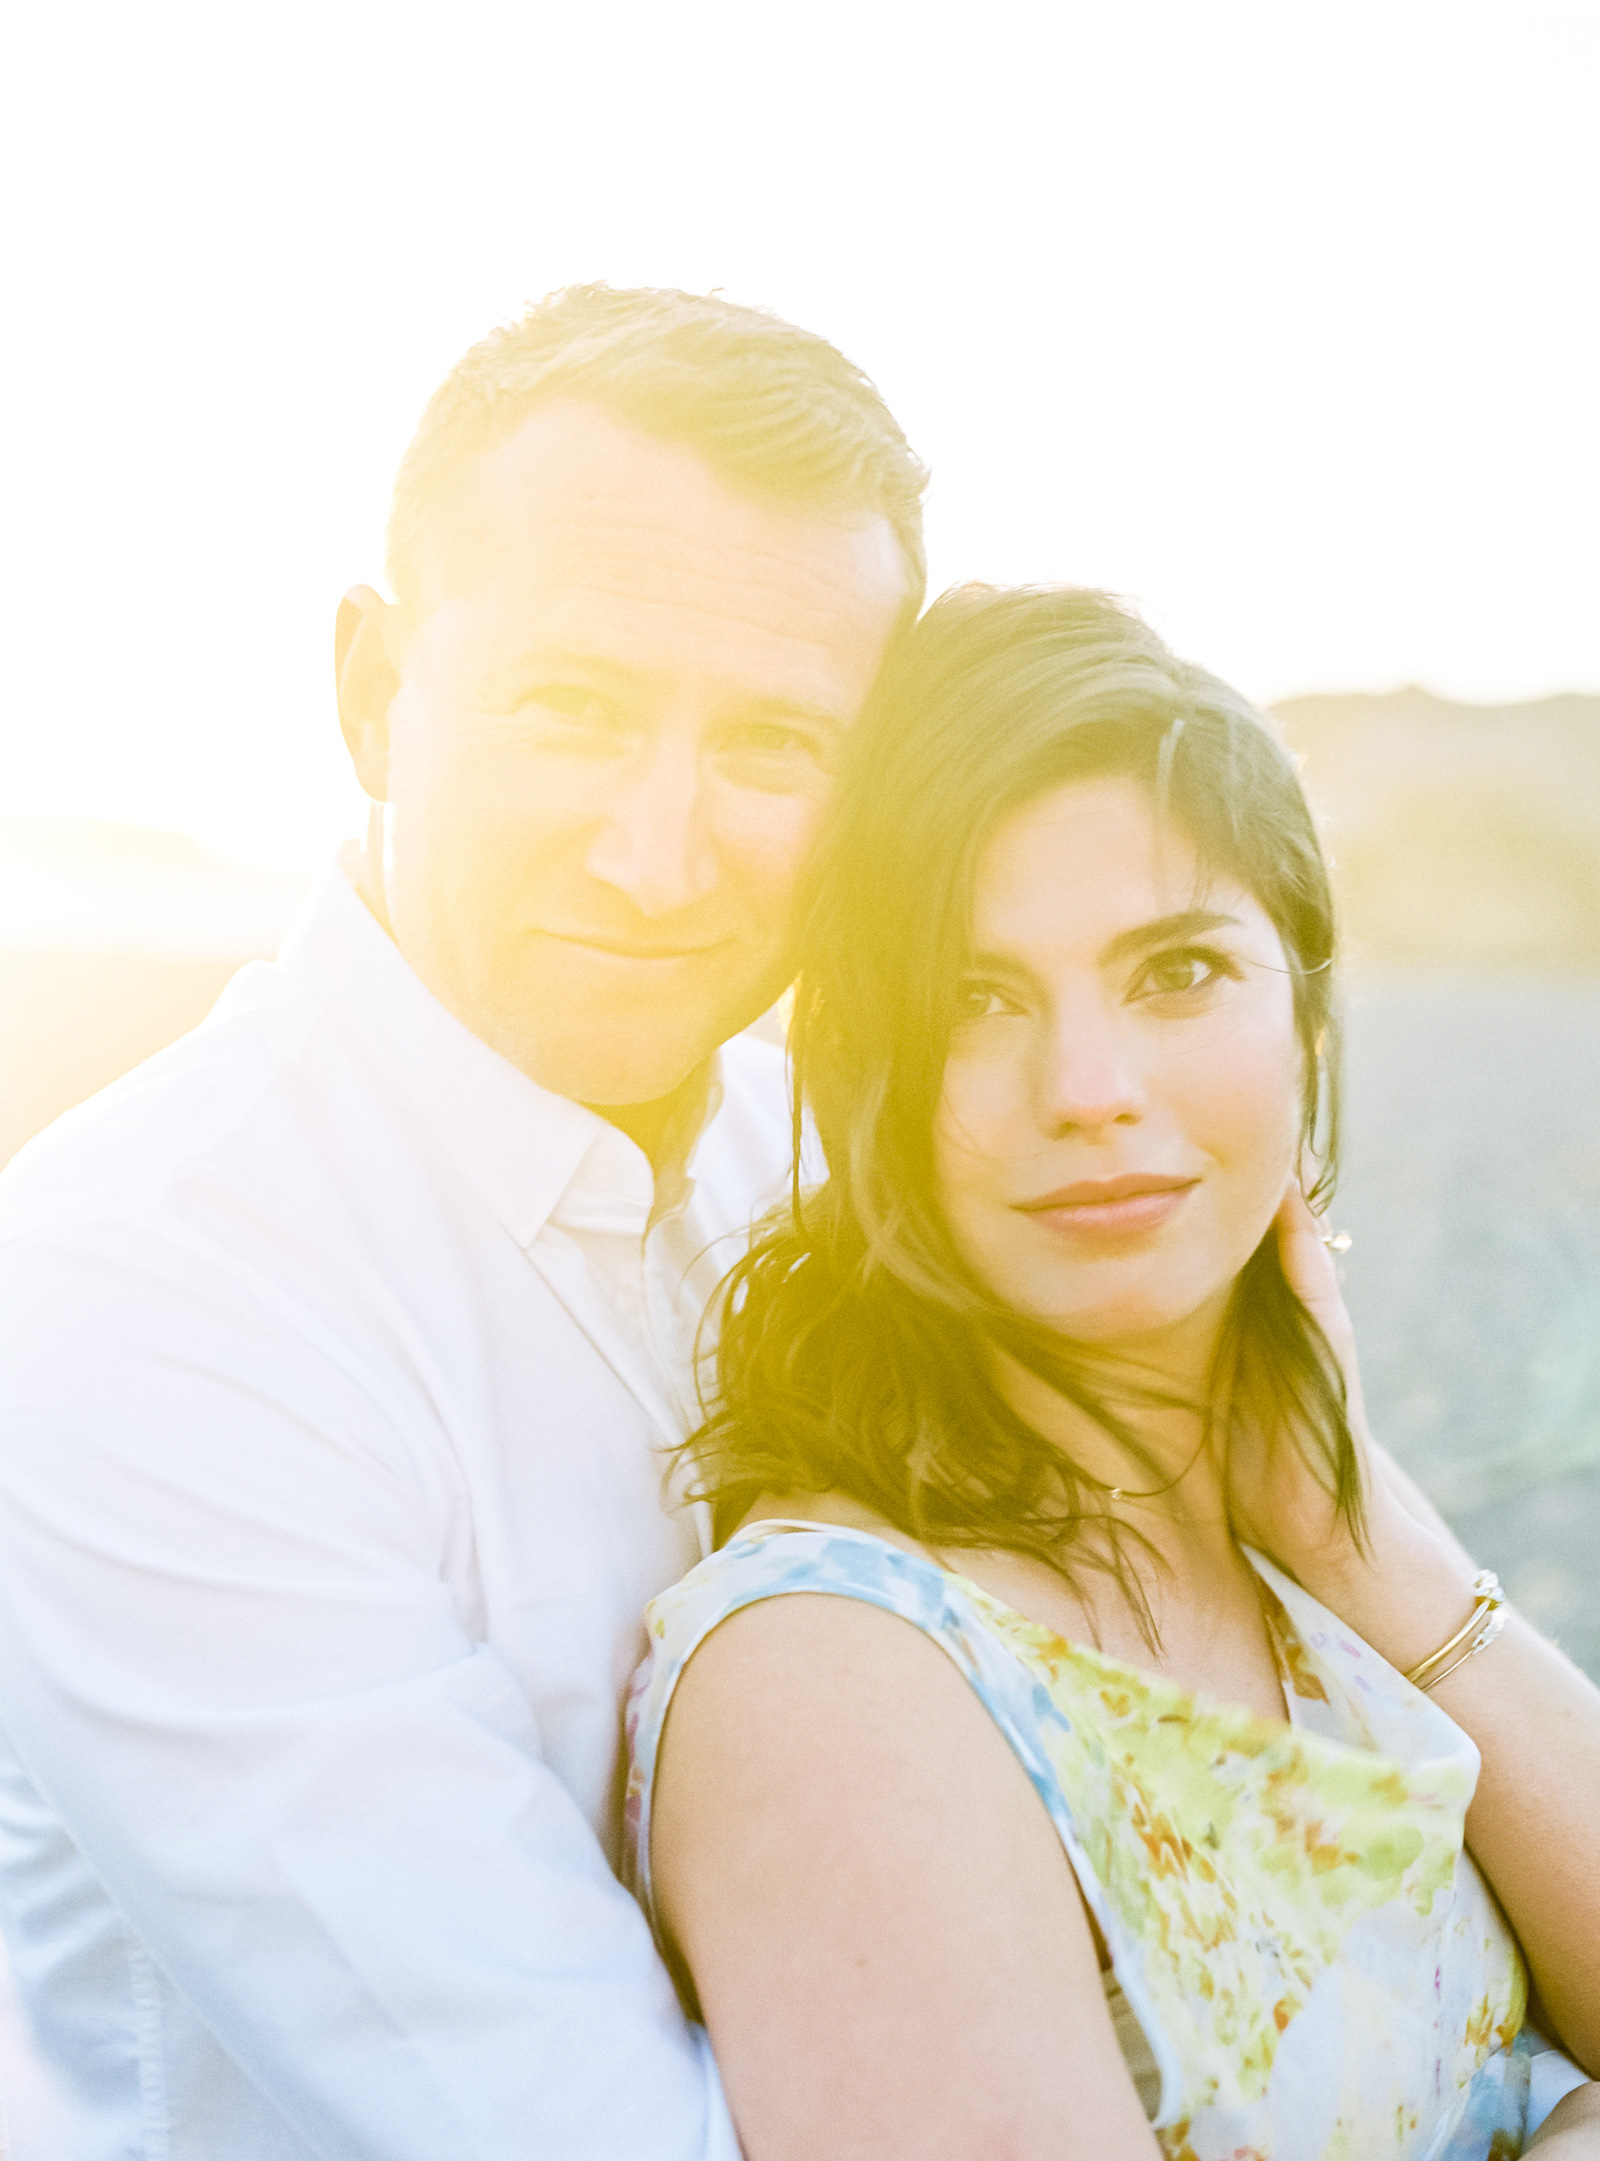 Natalie-Schutt-Photography-Malibu-Engagements-Malibu-Wedding-Beachside-Wedding-Fine-Art-Wedding-Photography-Southern-California-Brides_04.jpg